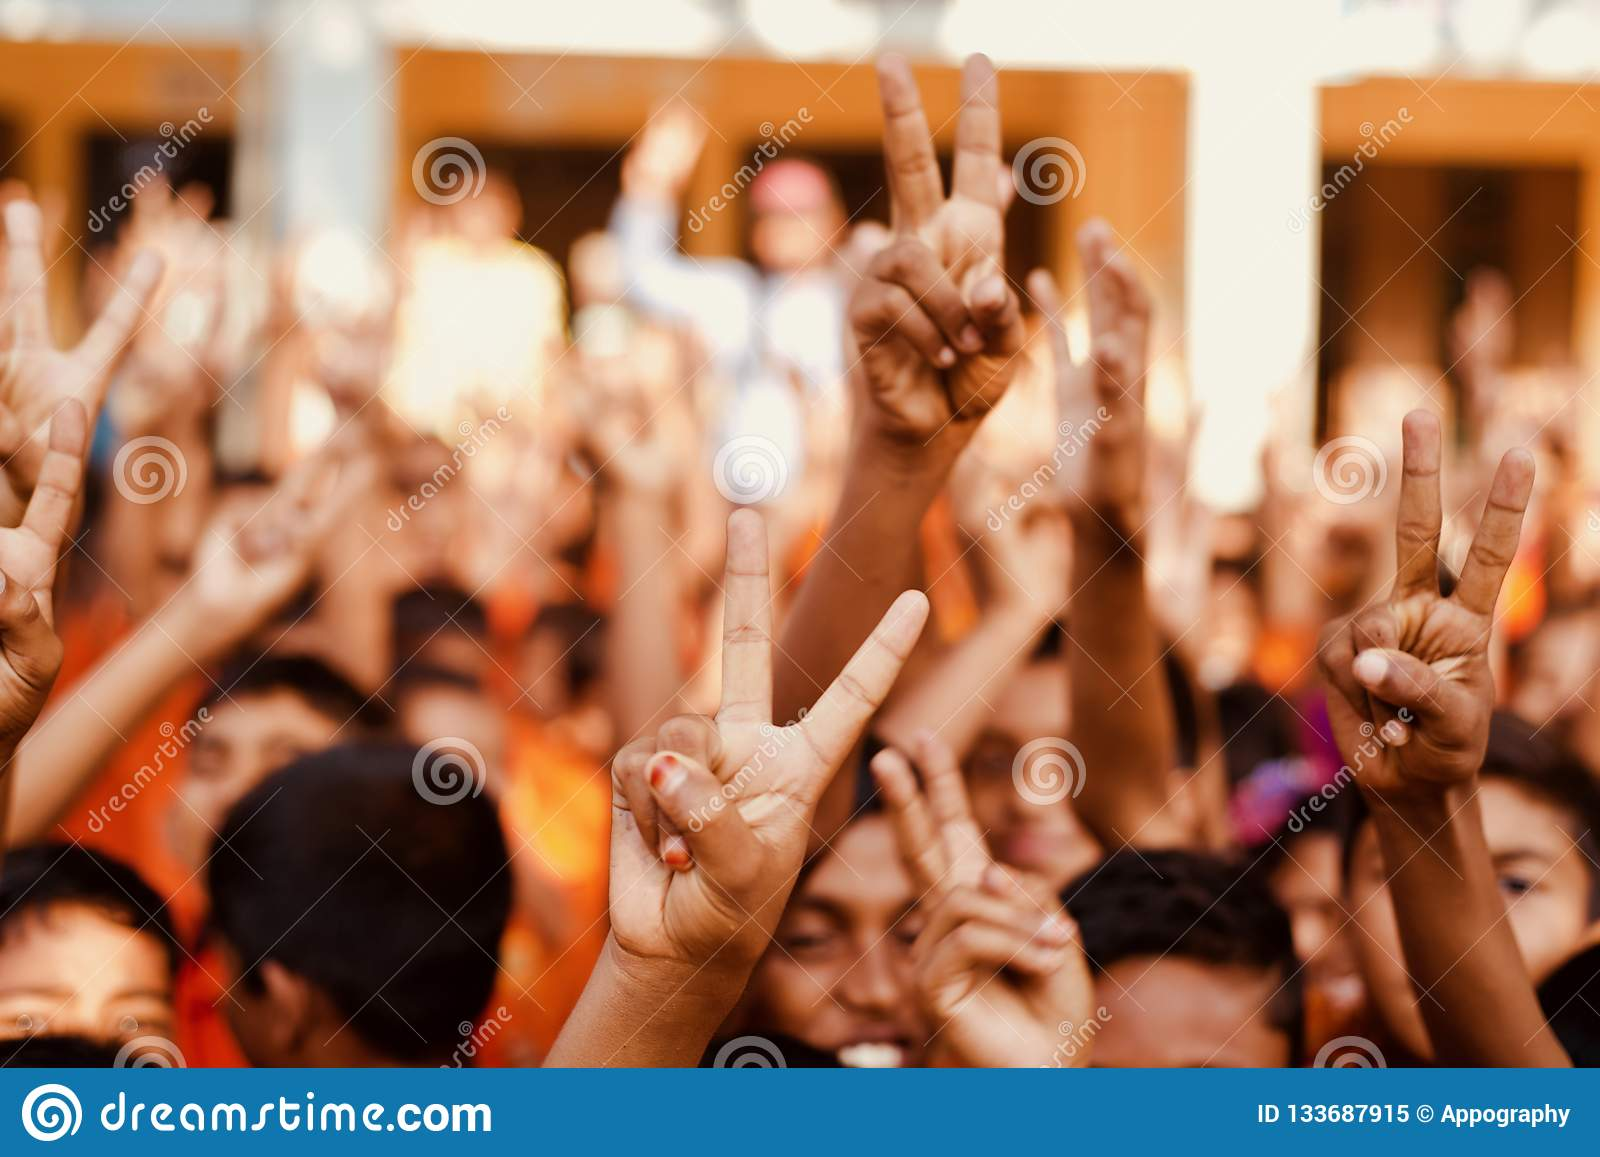 Young kids showing victory sign unique photo